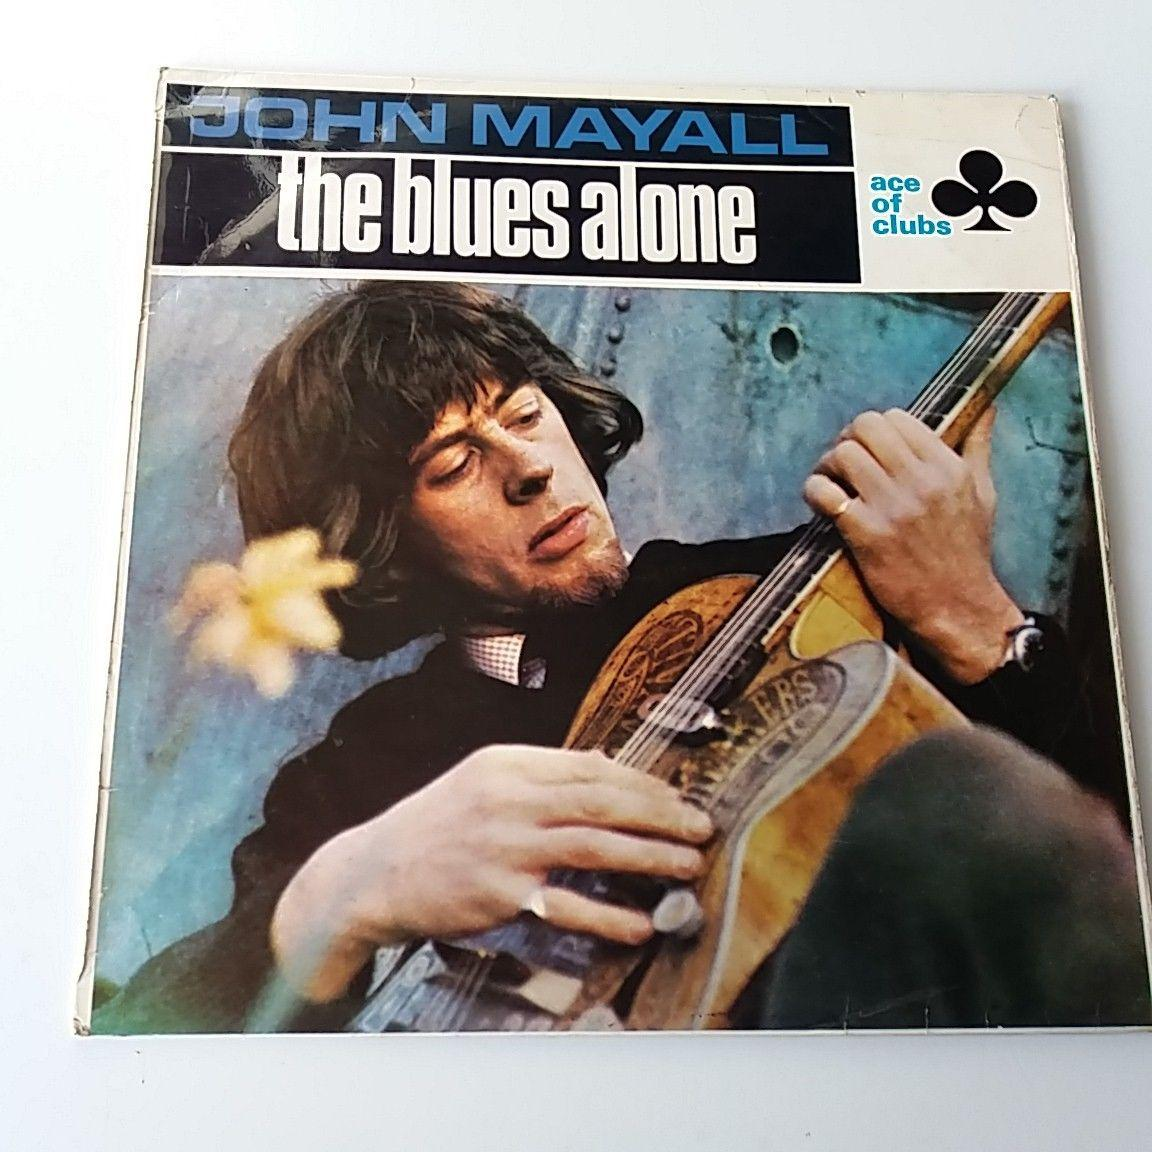 John Mayall - Blues Alone Vinyl Album LP Mono UK 1st Press 1967